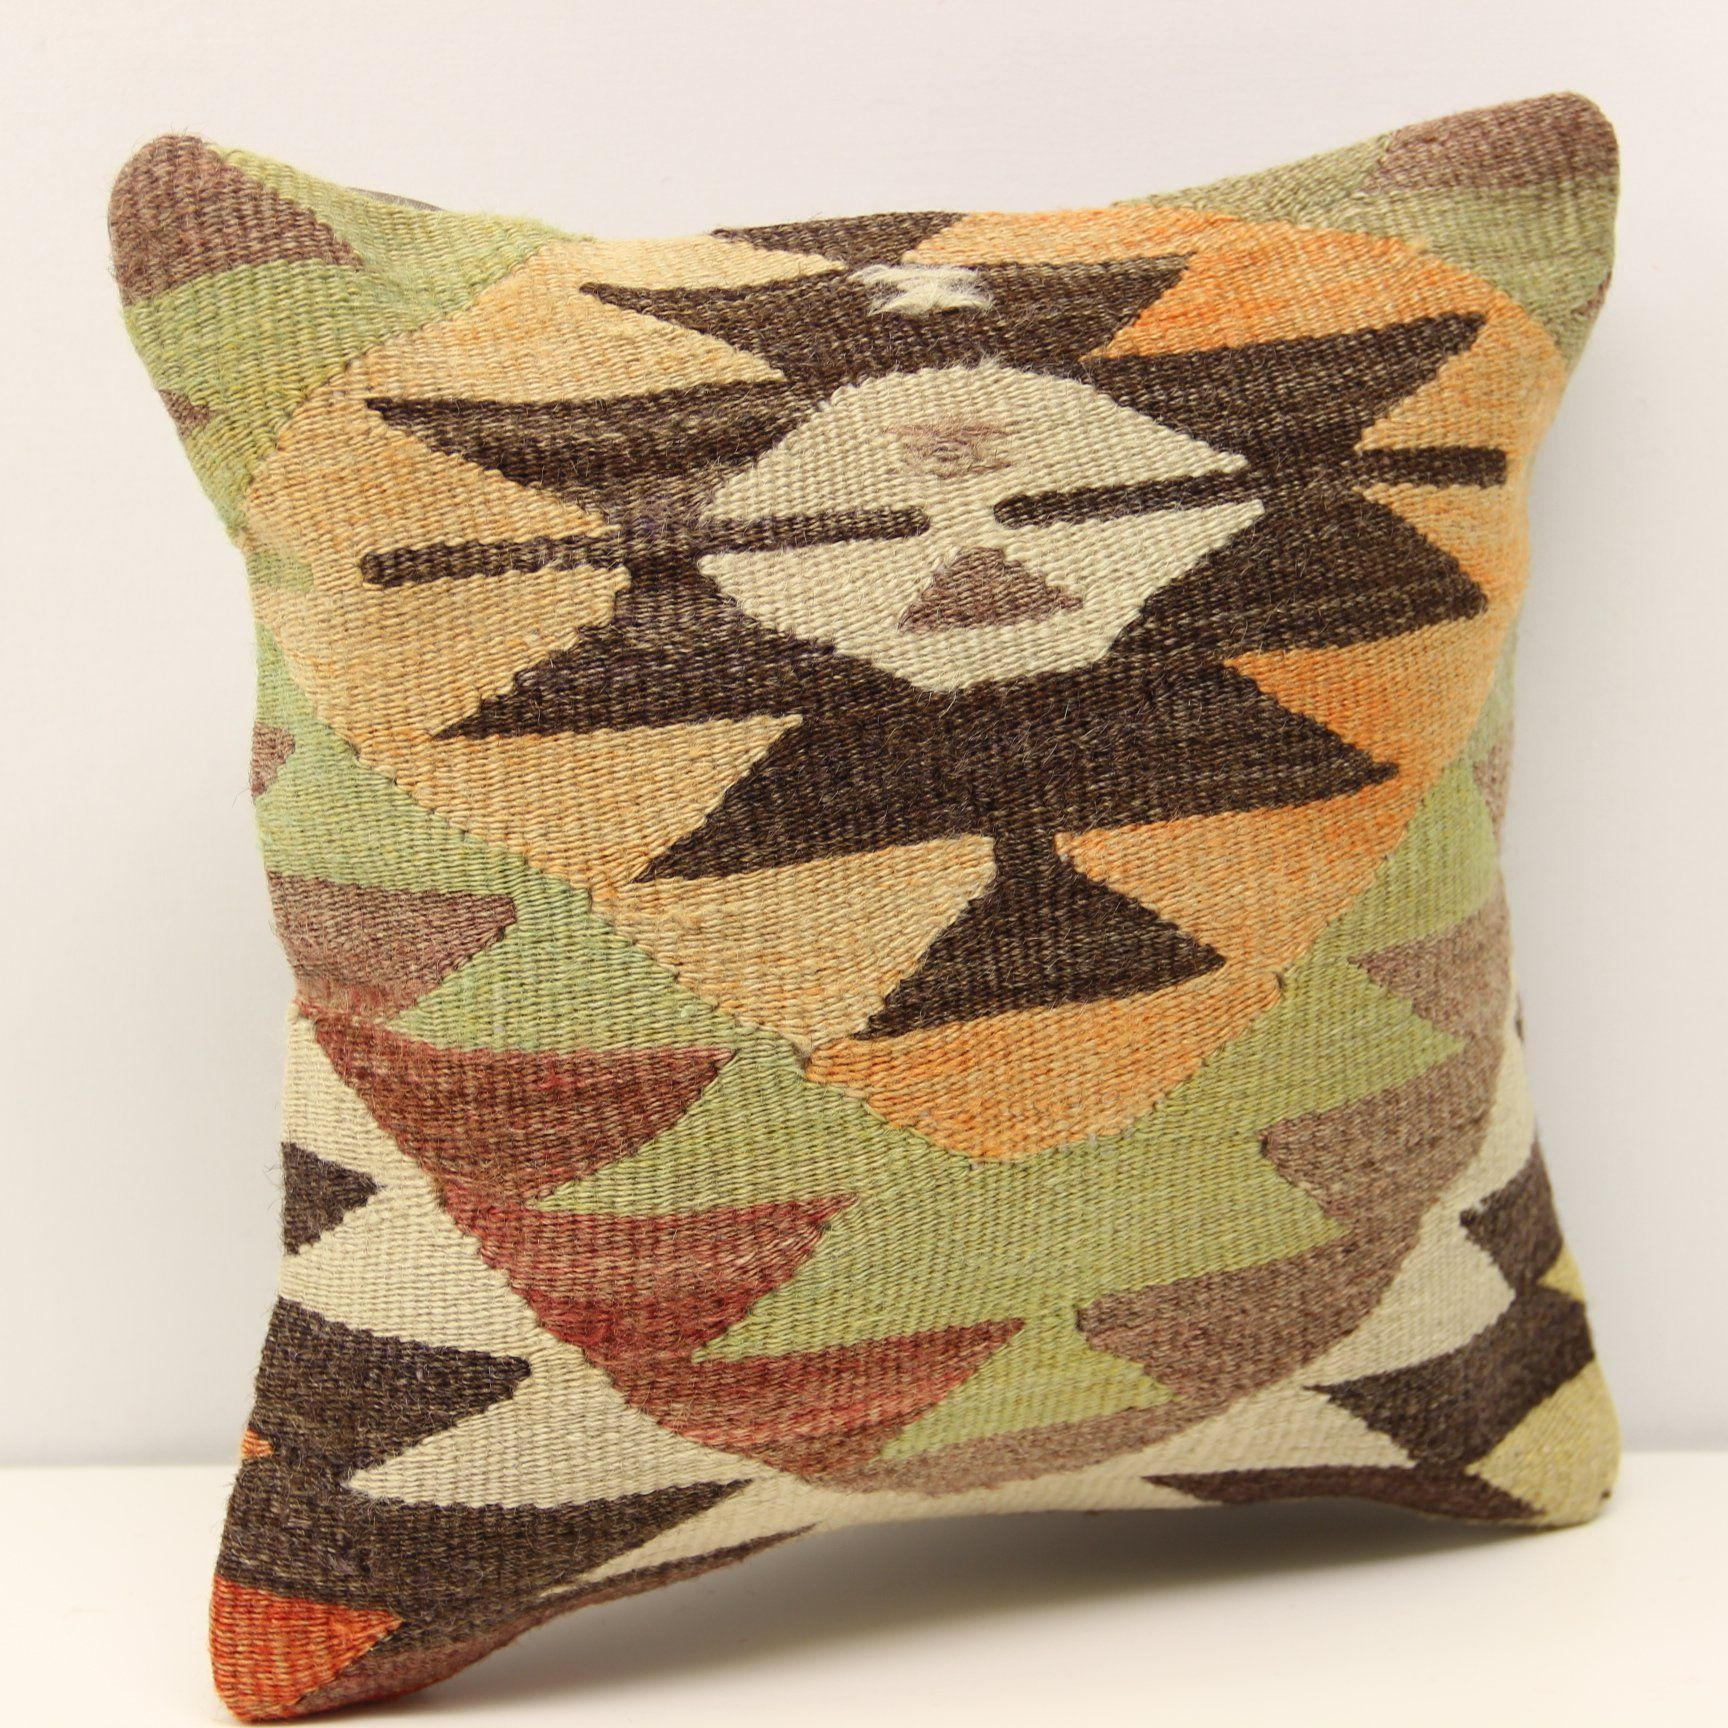 kilim pillows collections turkish products all pillow image co collectiv